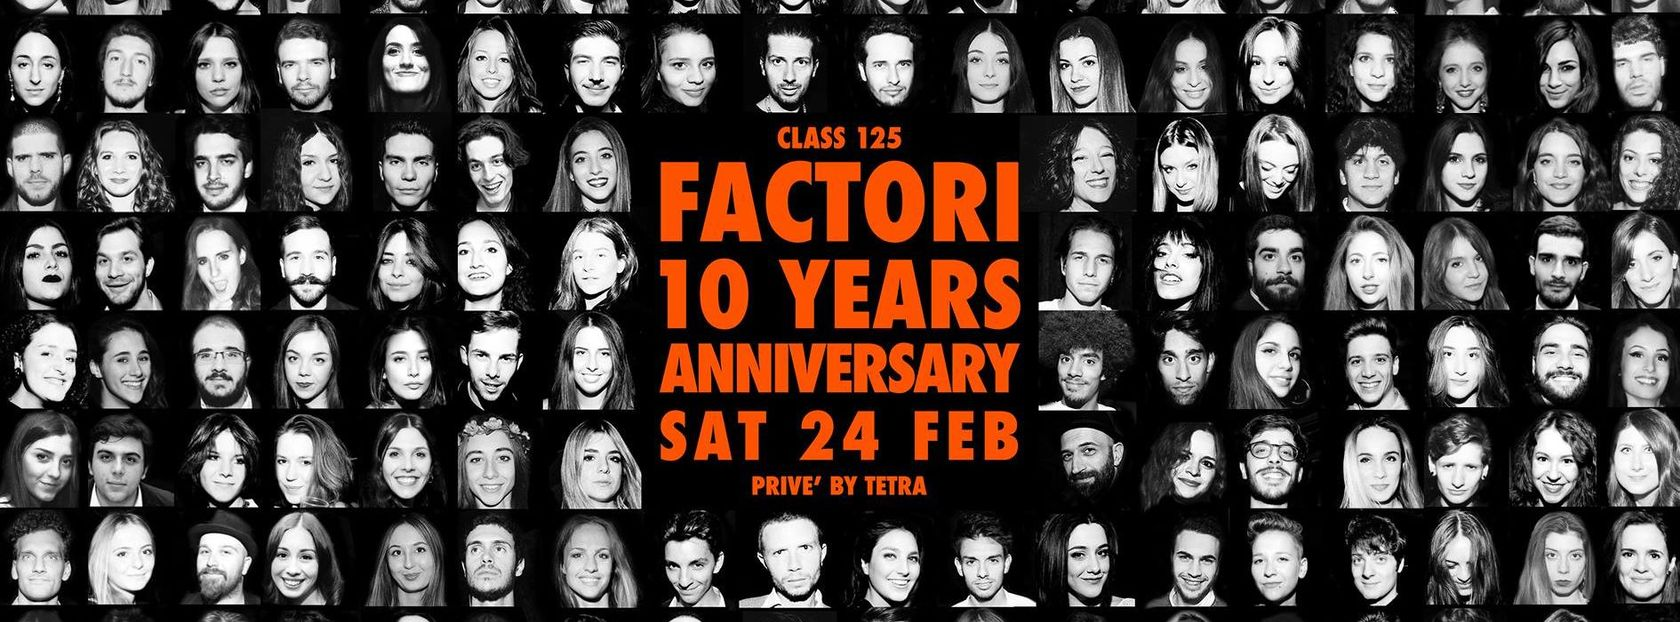 FACTORi 10 Years Anniversary / Privé Tetra*